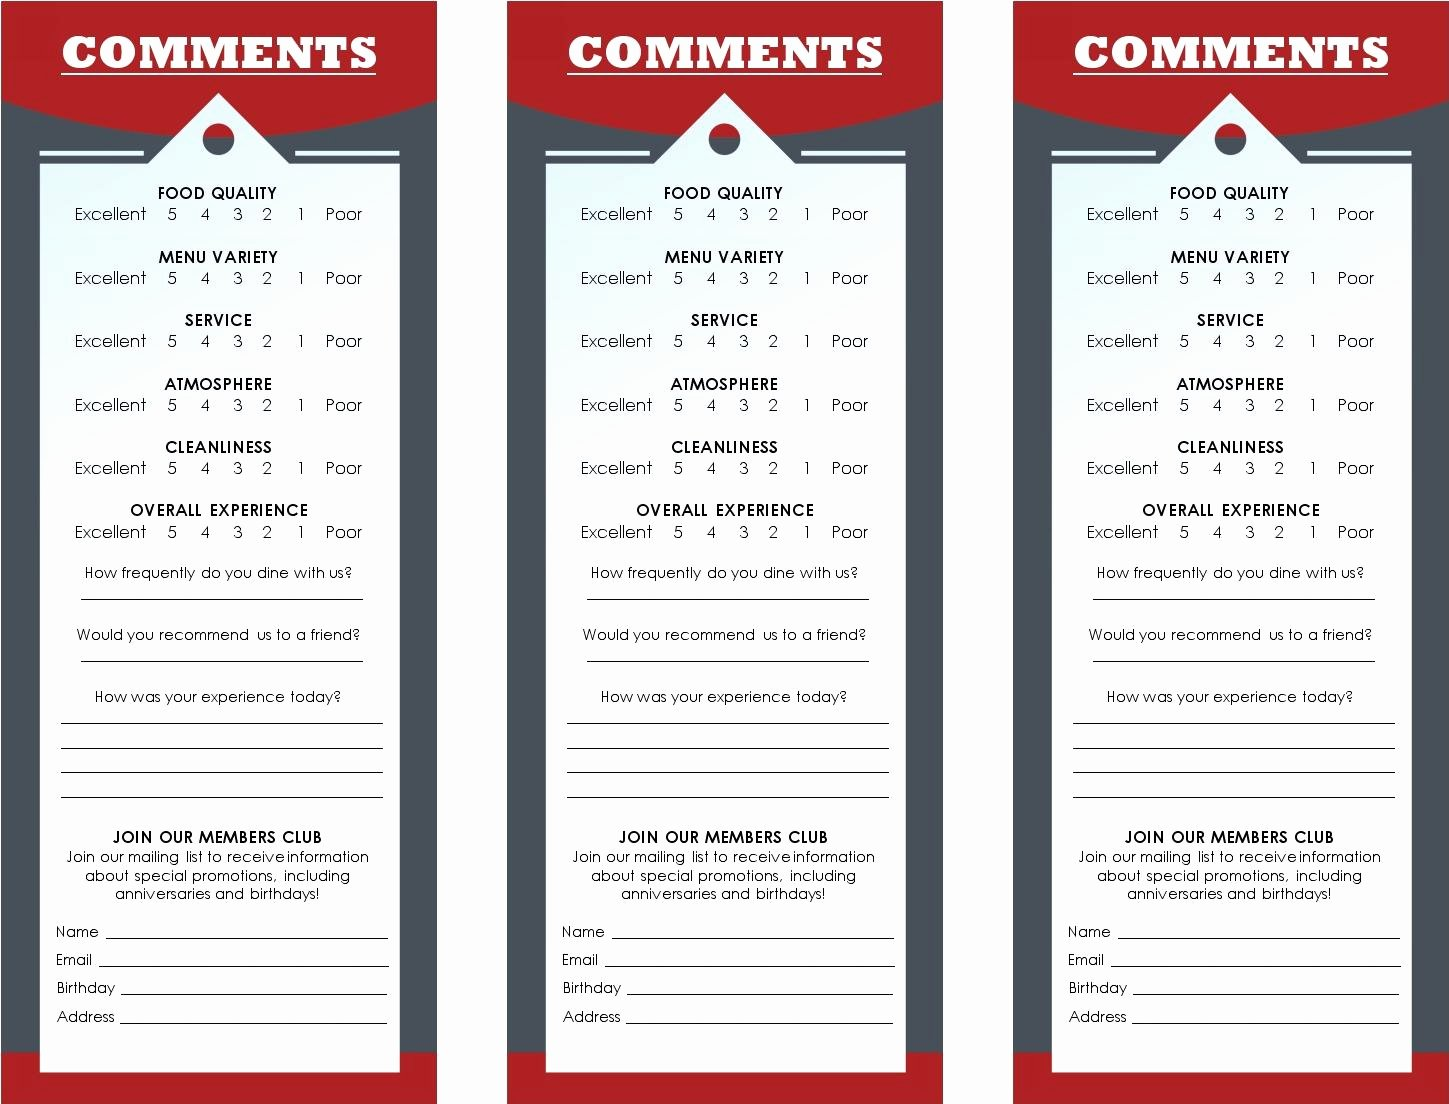 Restaurant Comment Card Template Free Lovely Cancel Save